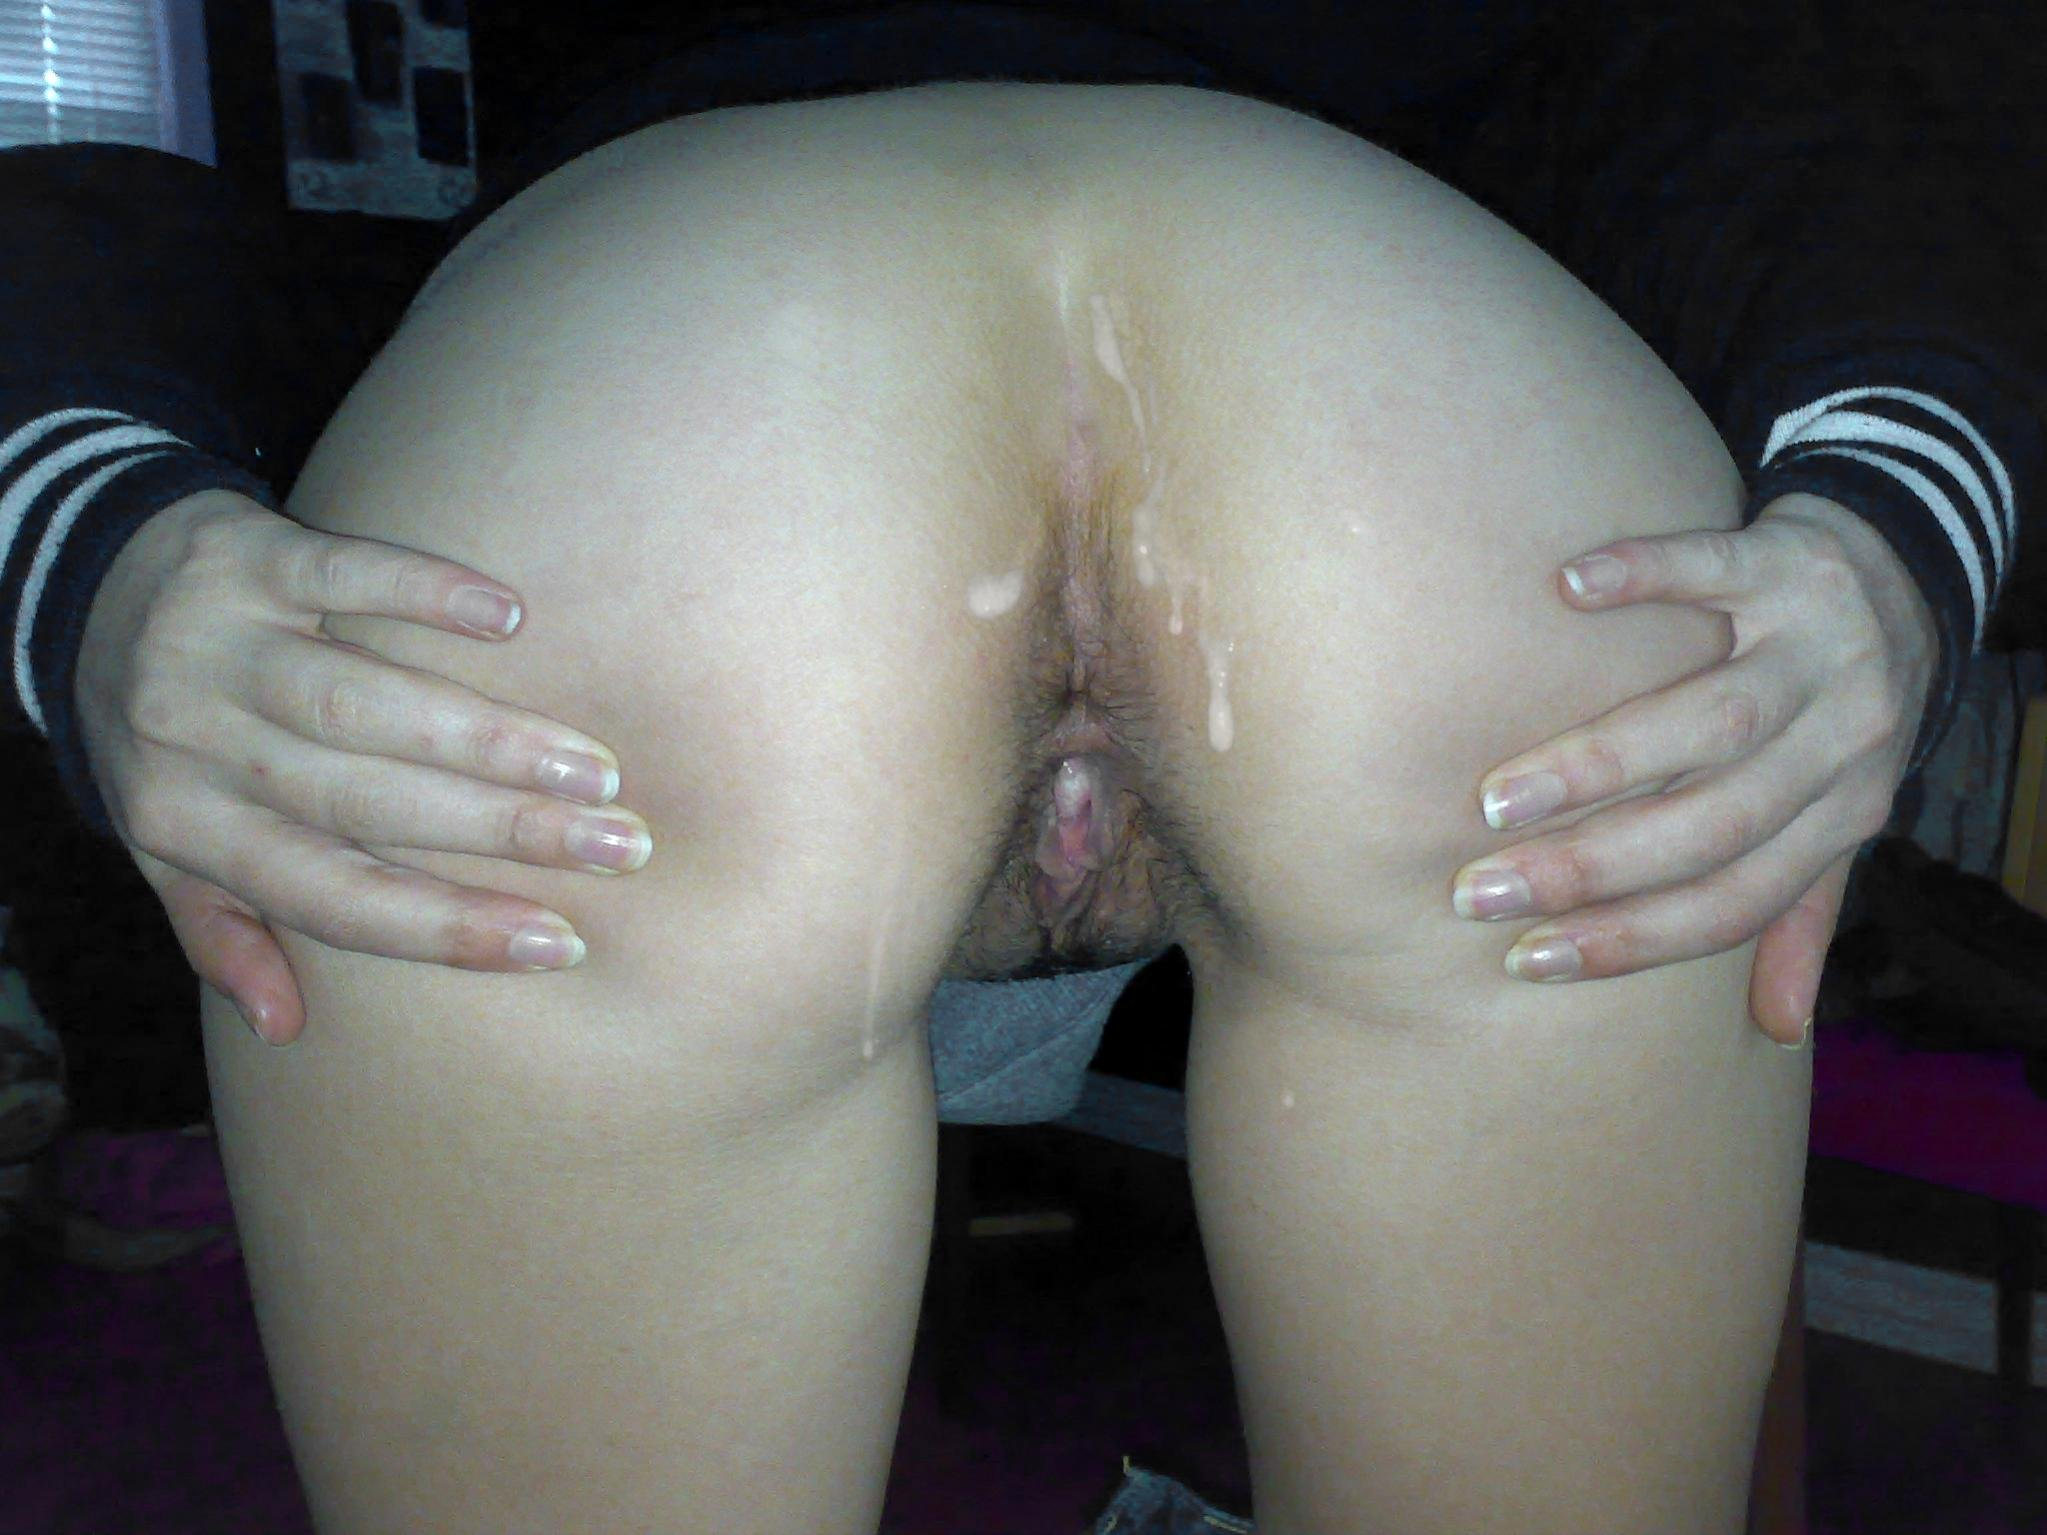 a creampie for a sexy newbie amateur